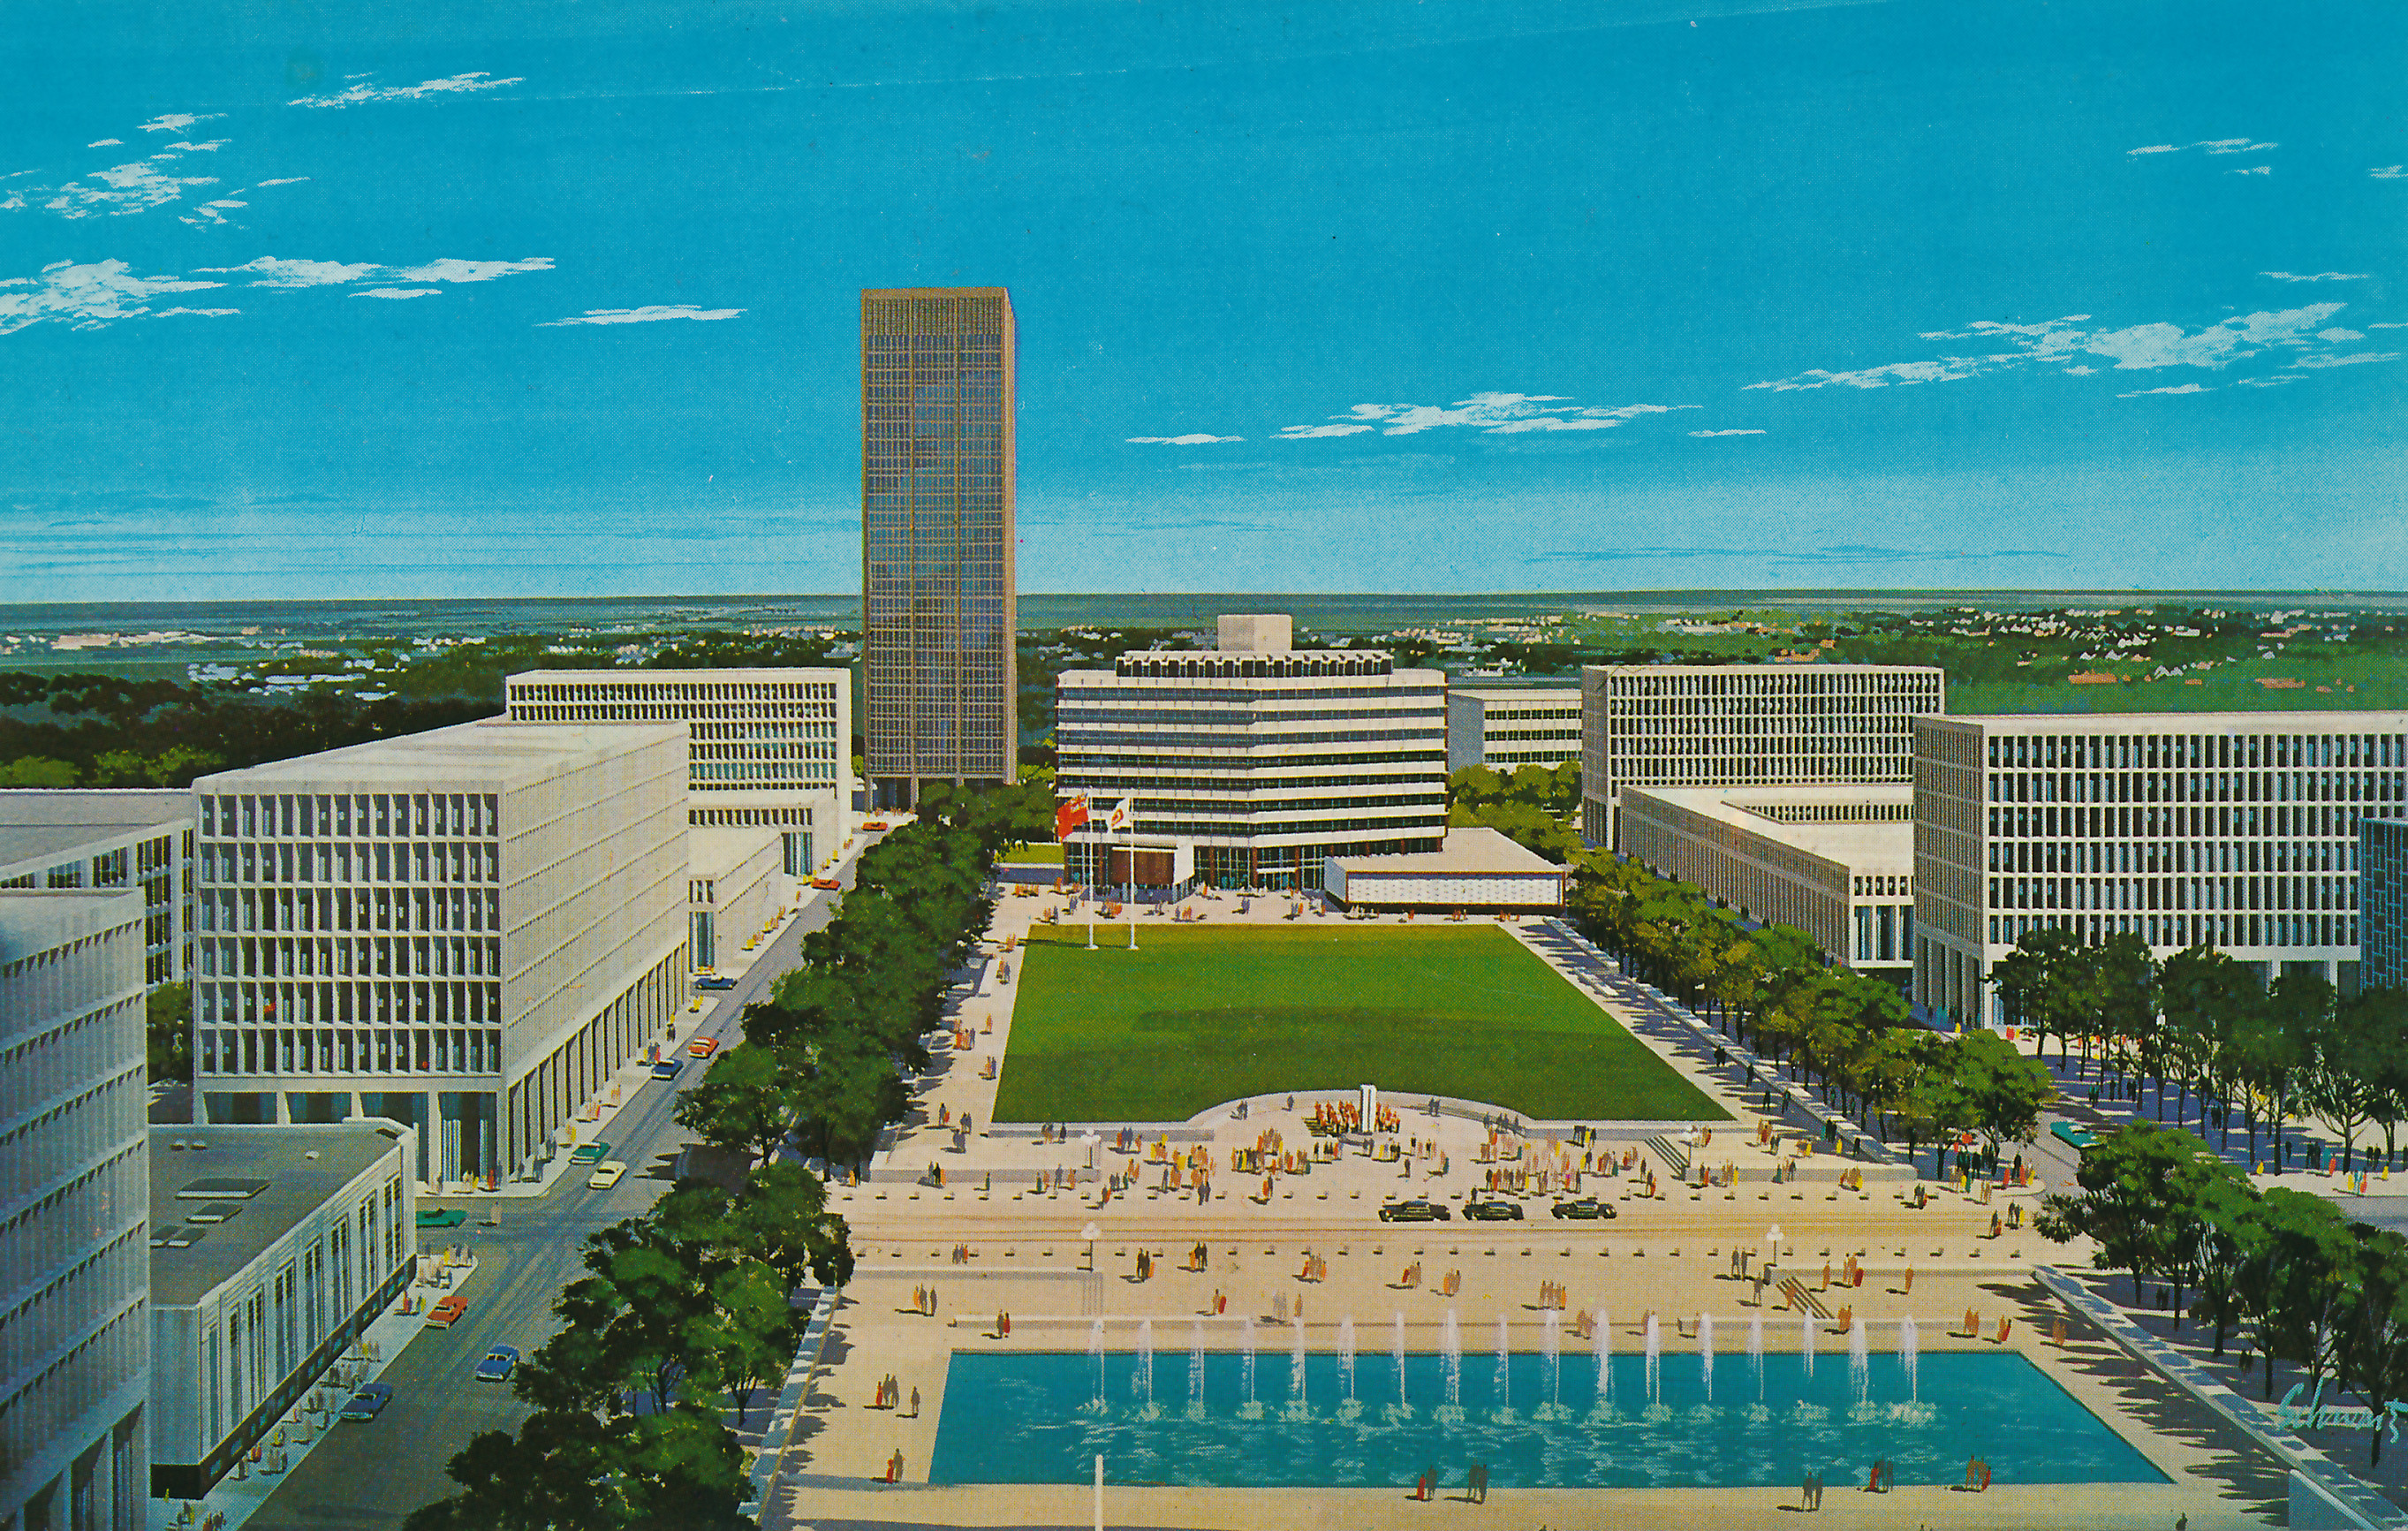 edmonton civic center plan